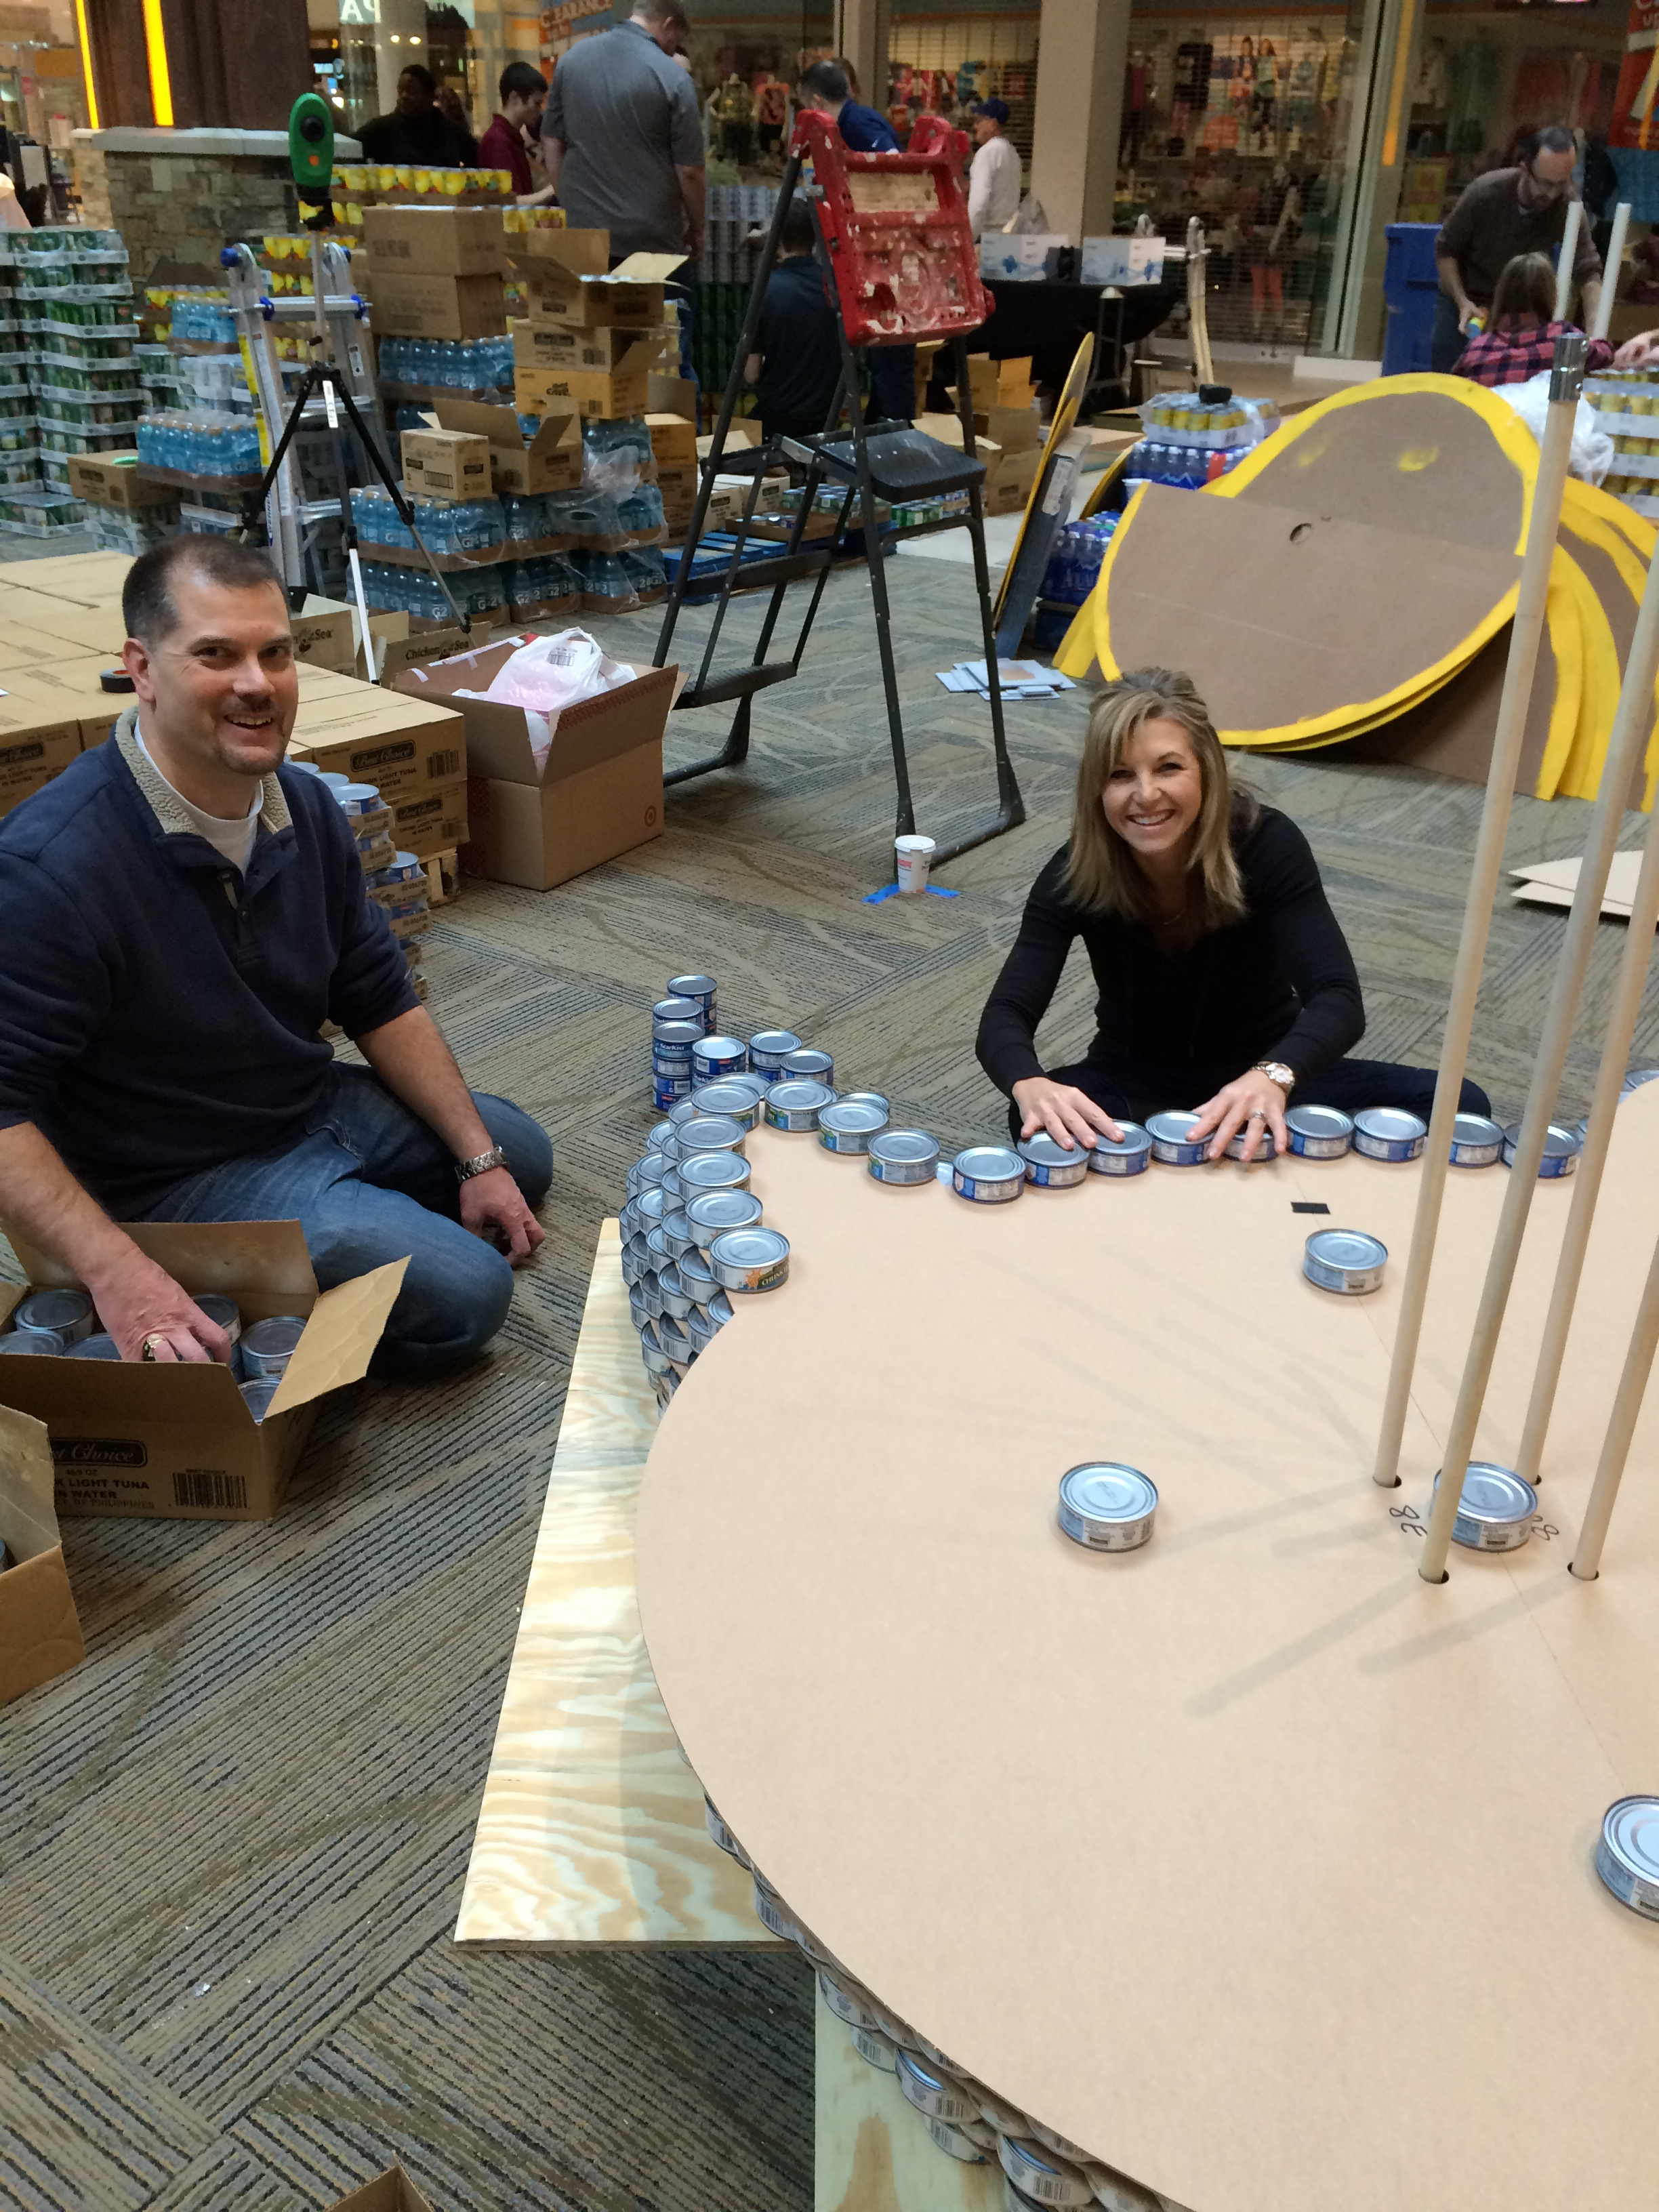 ACI Boland team members, Suzie Apel and Brad Guess, assembling the bottom layers of our Canculpture.